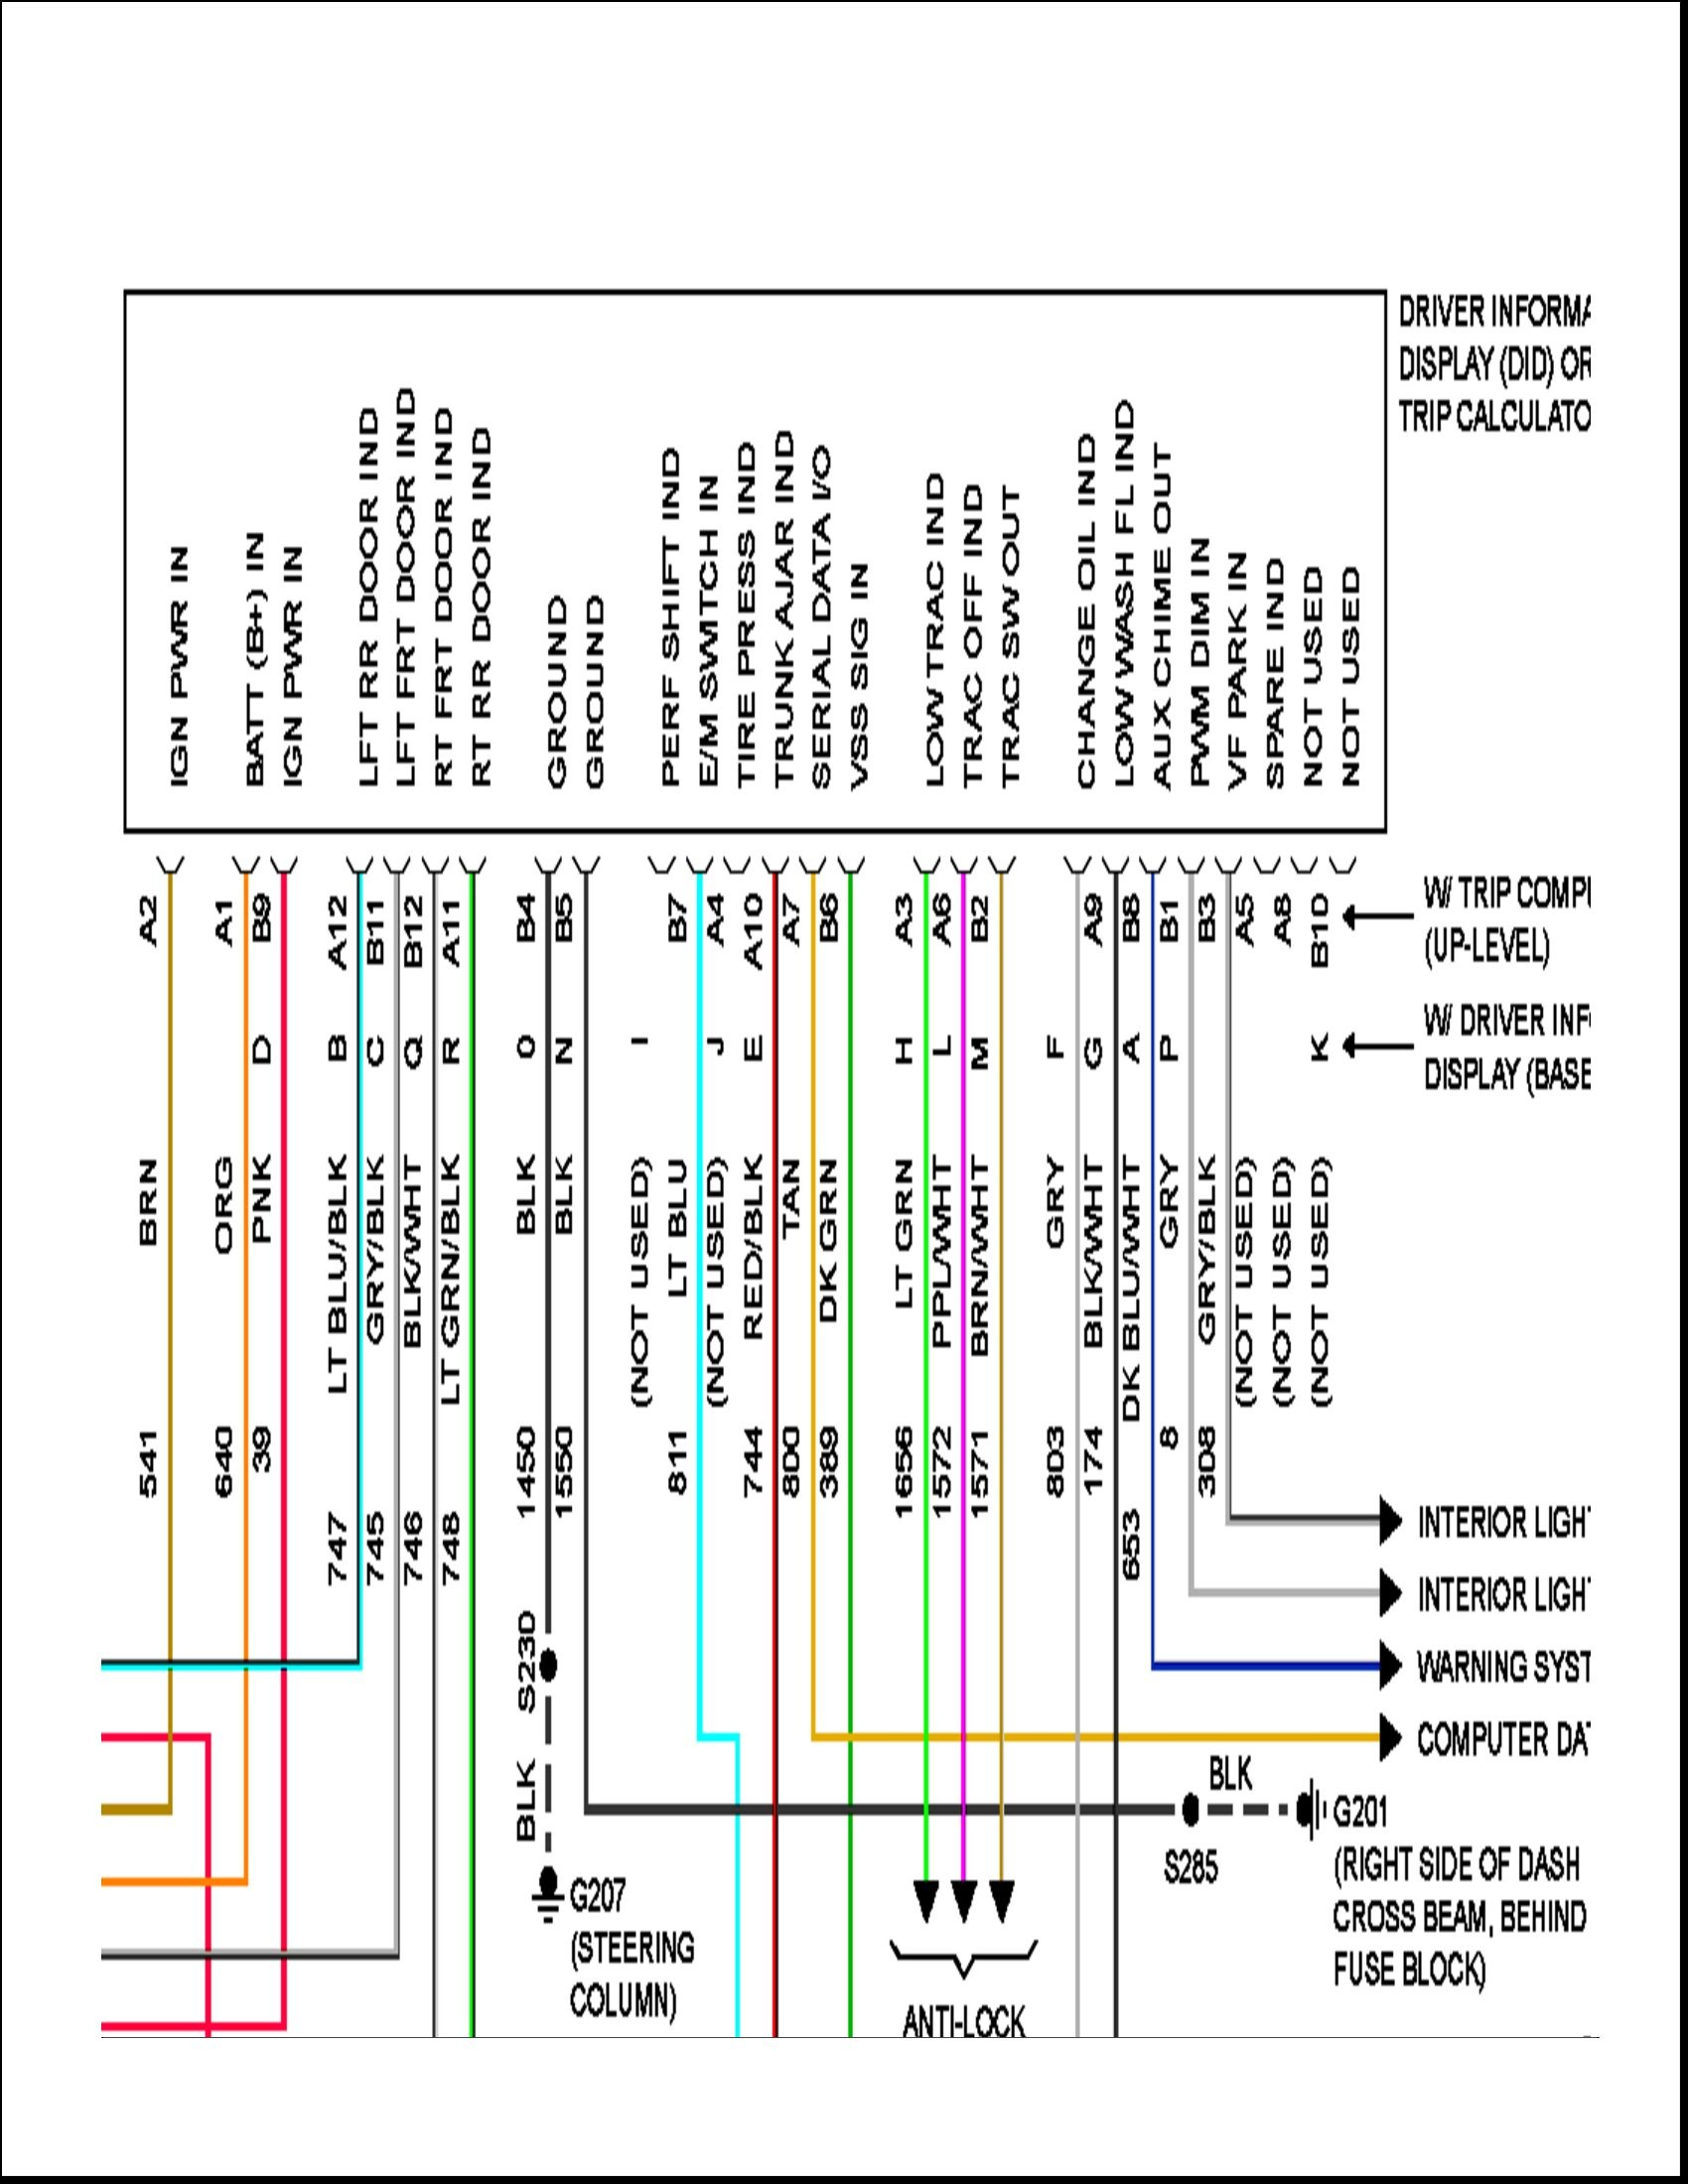 hight resolution of 1999 pontiac grand am stereo wiring diagram free wiring diagram 1970 pontiac grand prix wiring diagram 2004 grand prix stereo wiring diagram